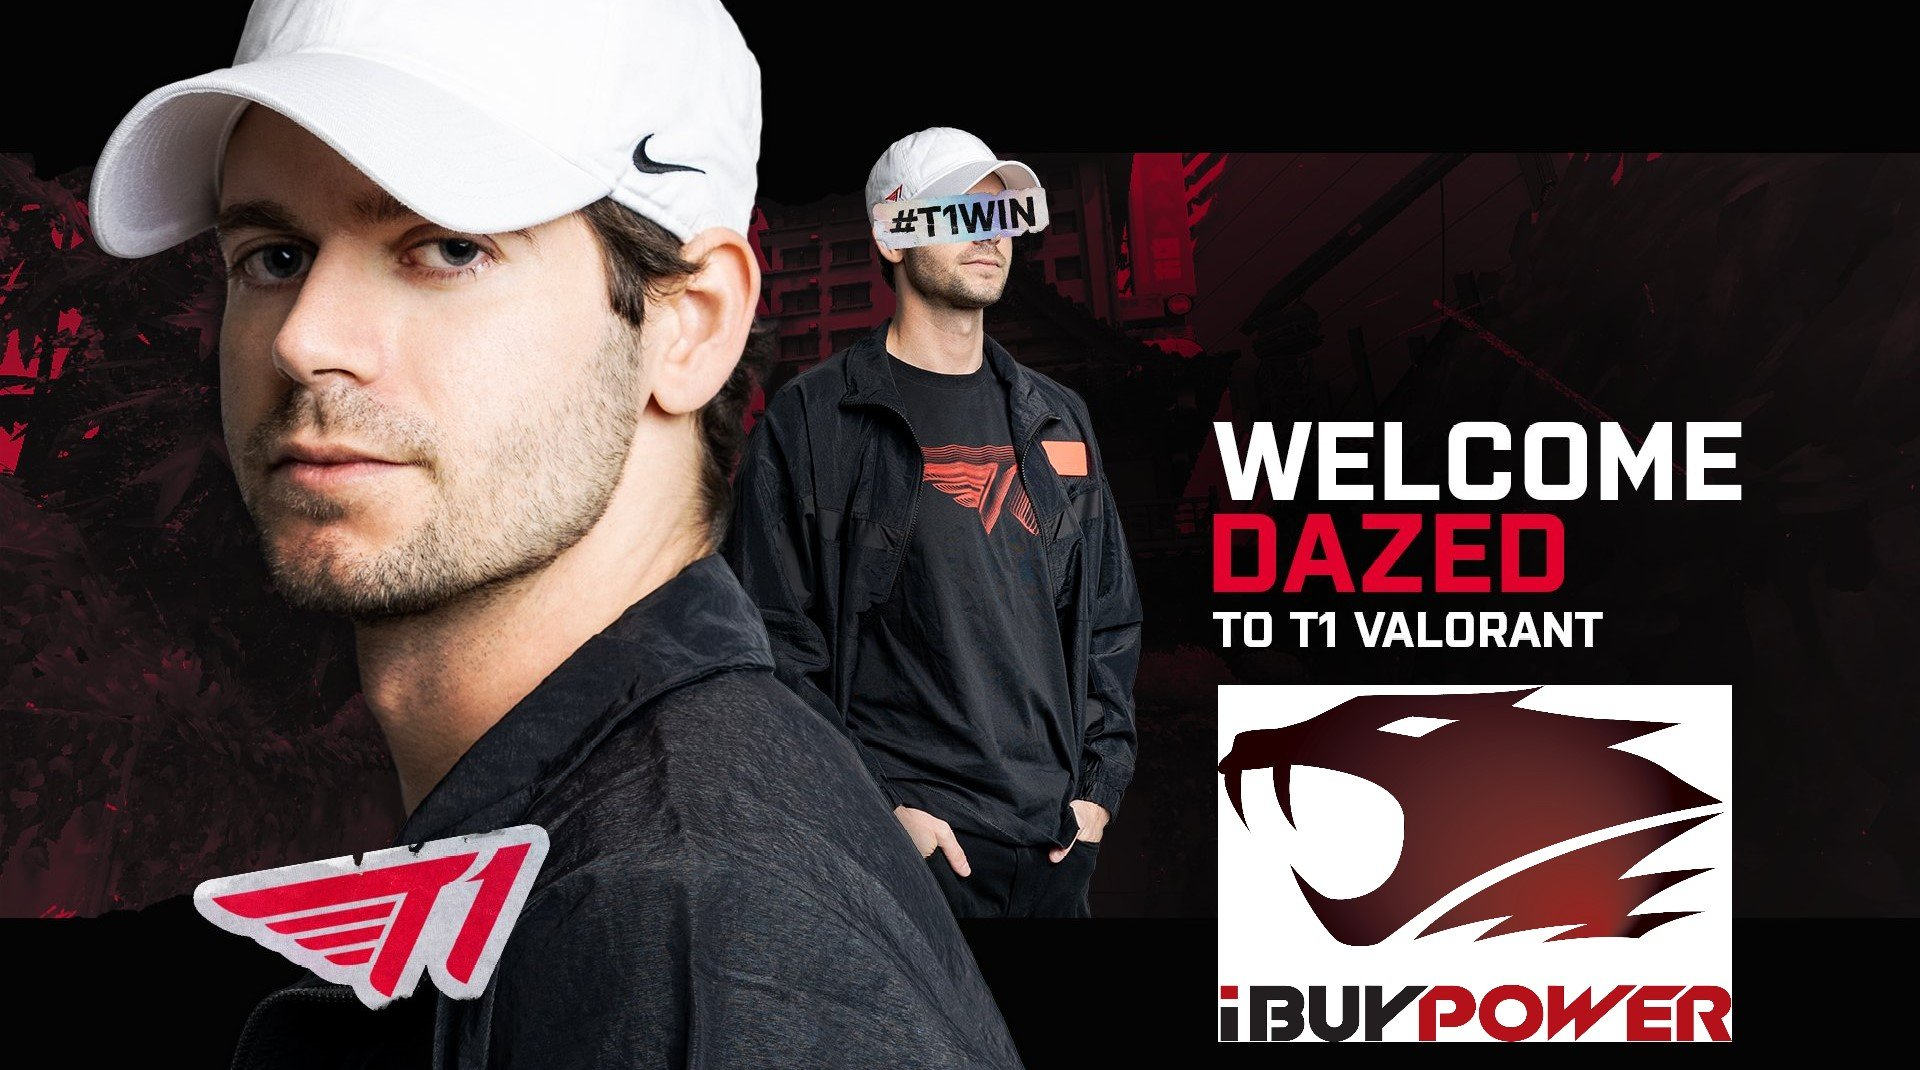 T1 Valorant recreates the infamous iBUYPOWER roster by adding DaZed